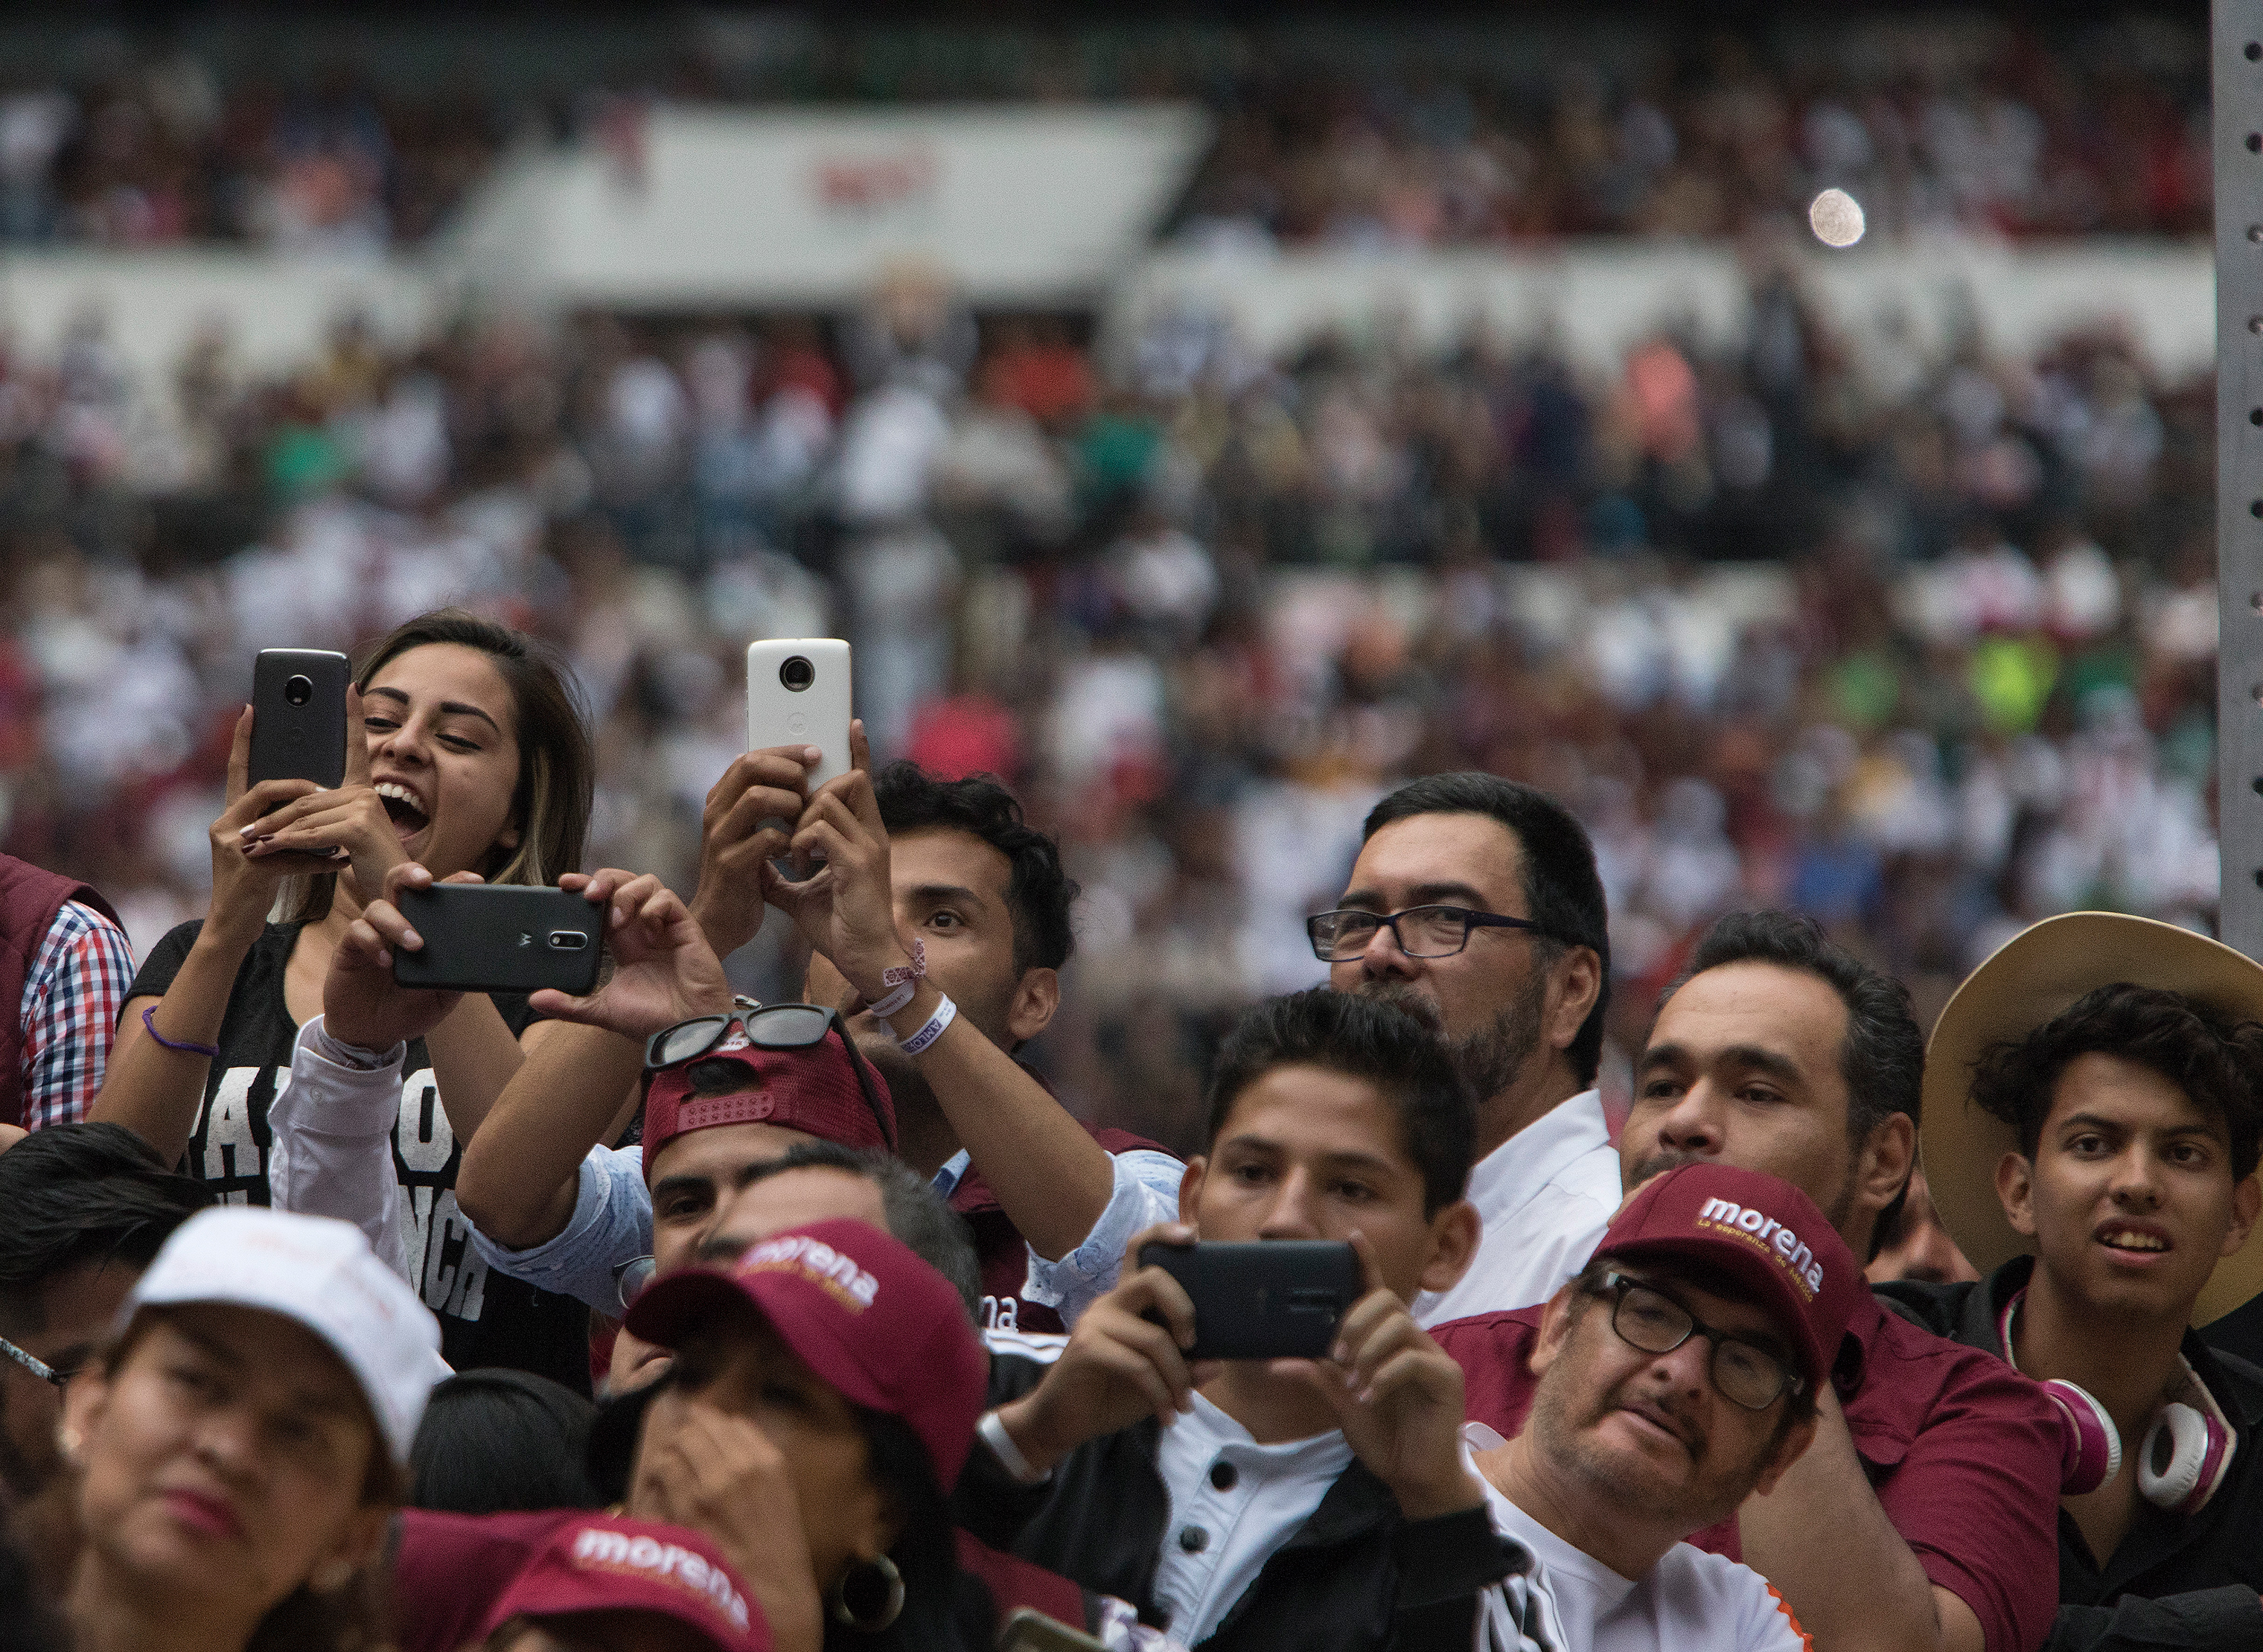 Supporters hold up their mobile phones during a musical performance at López Obrador's final campaign rally at Estadio Azetca in Mexico City on June 27.